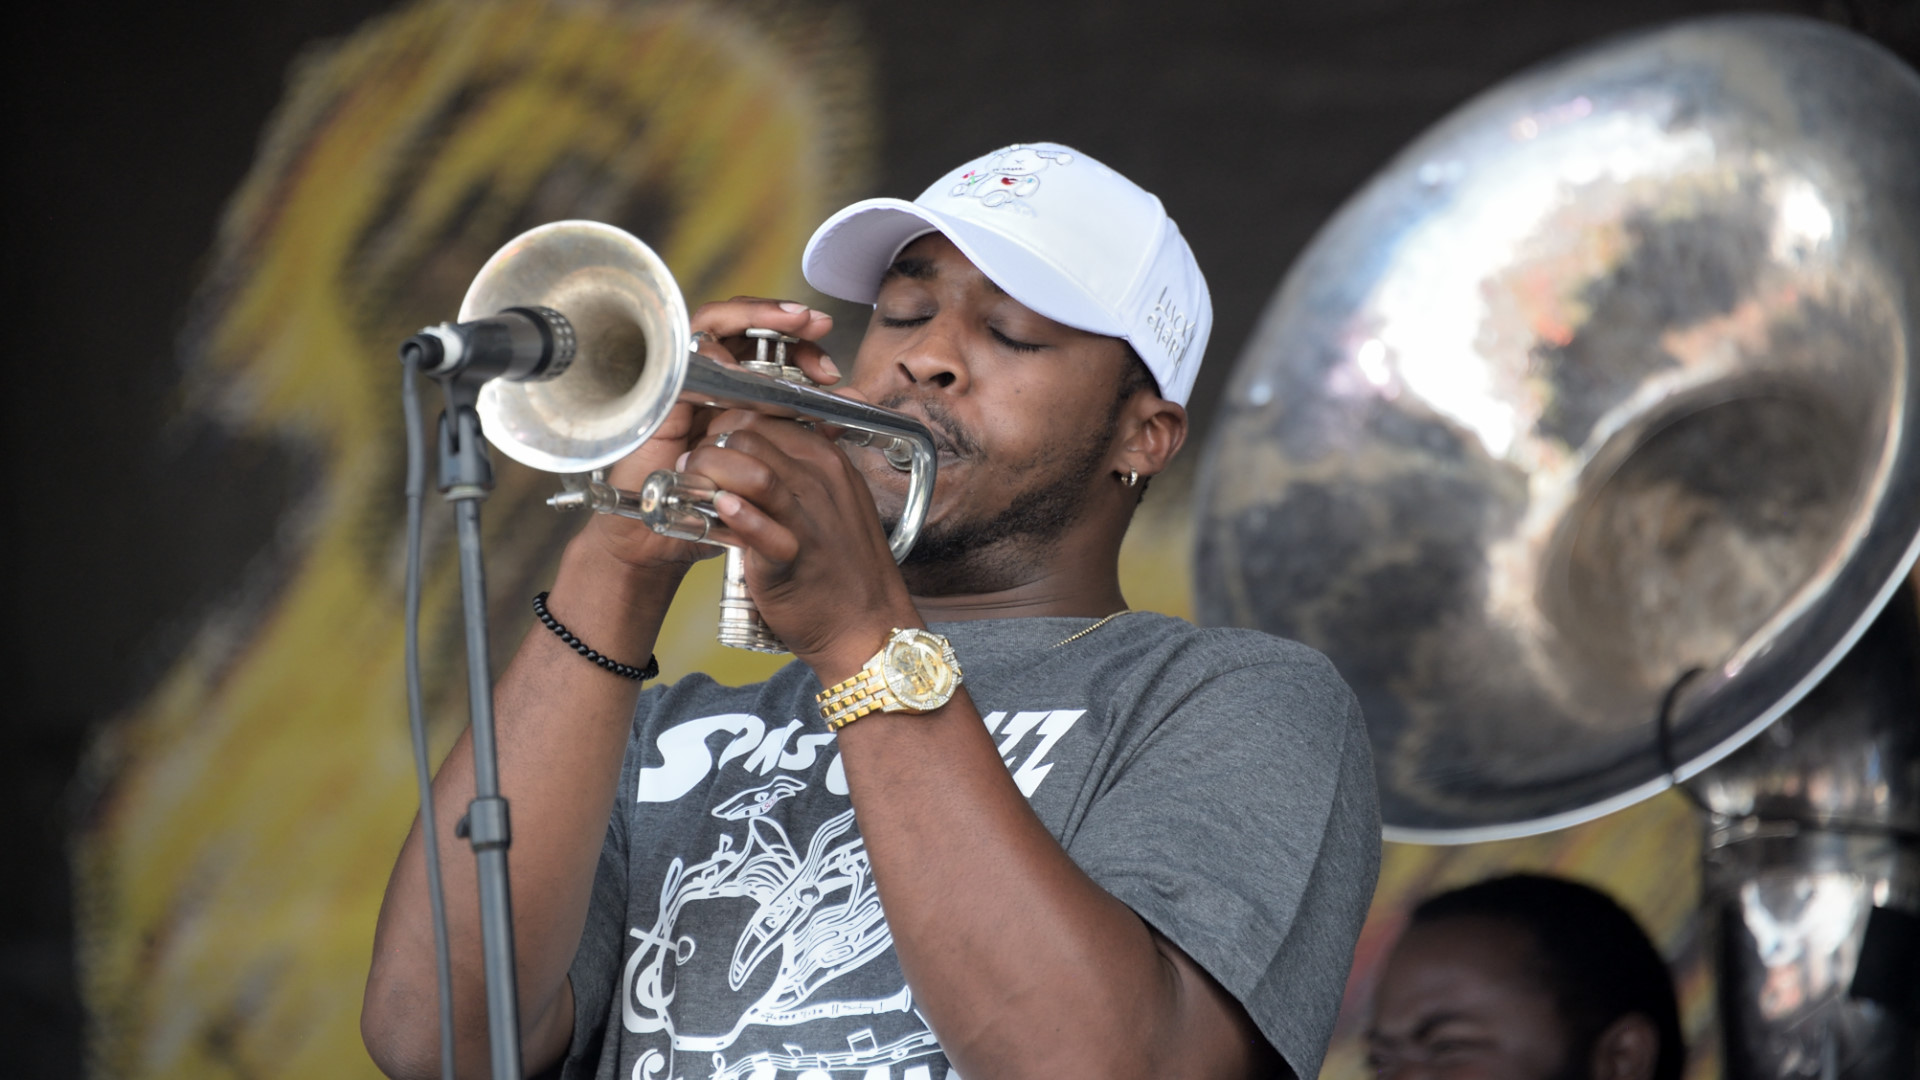 Sons of Jazz Brass Band trumpeter